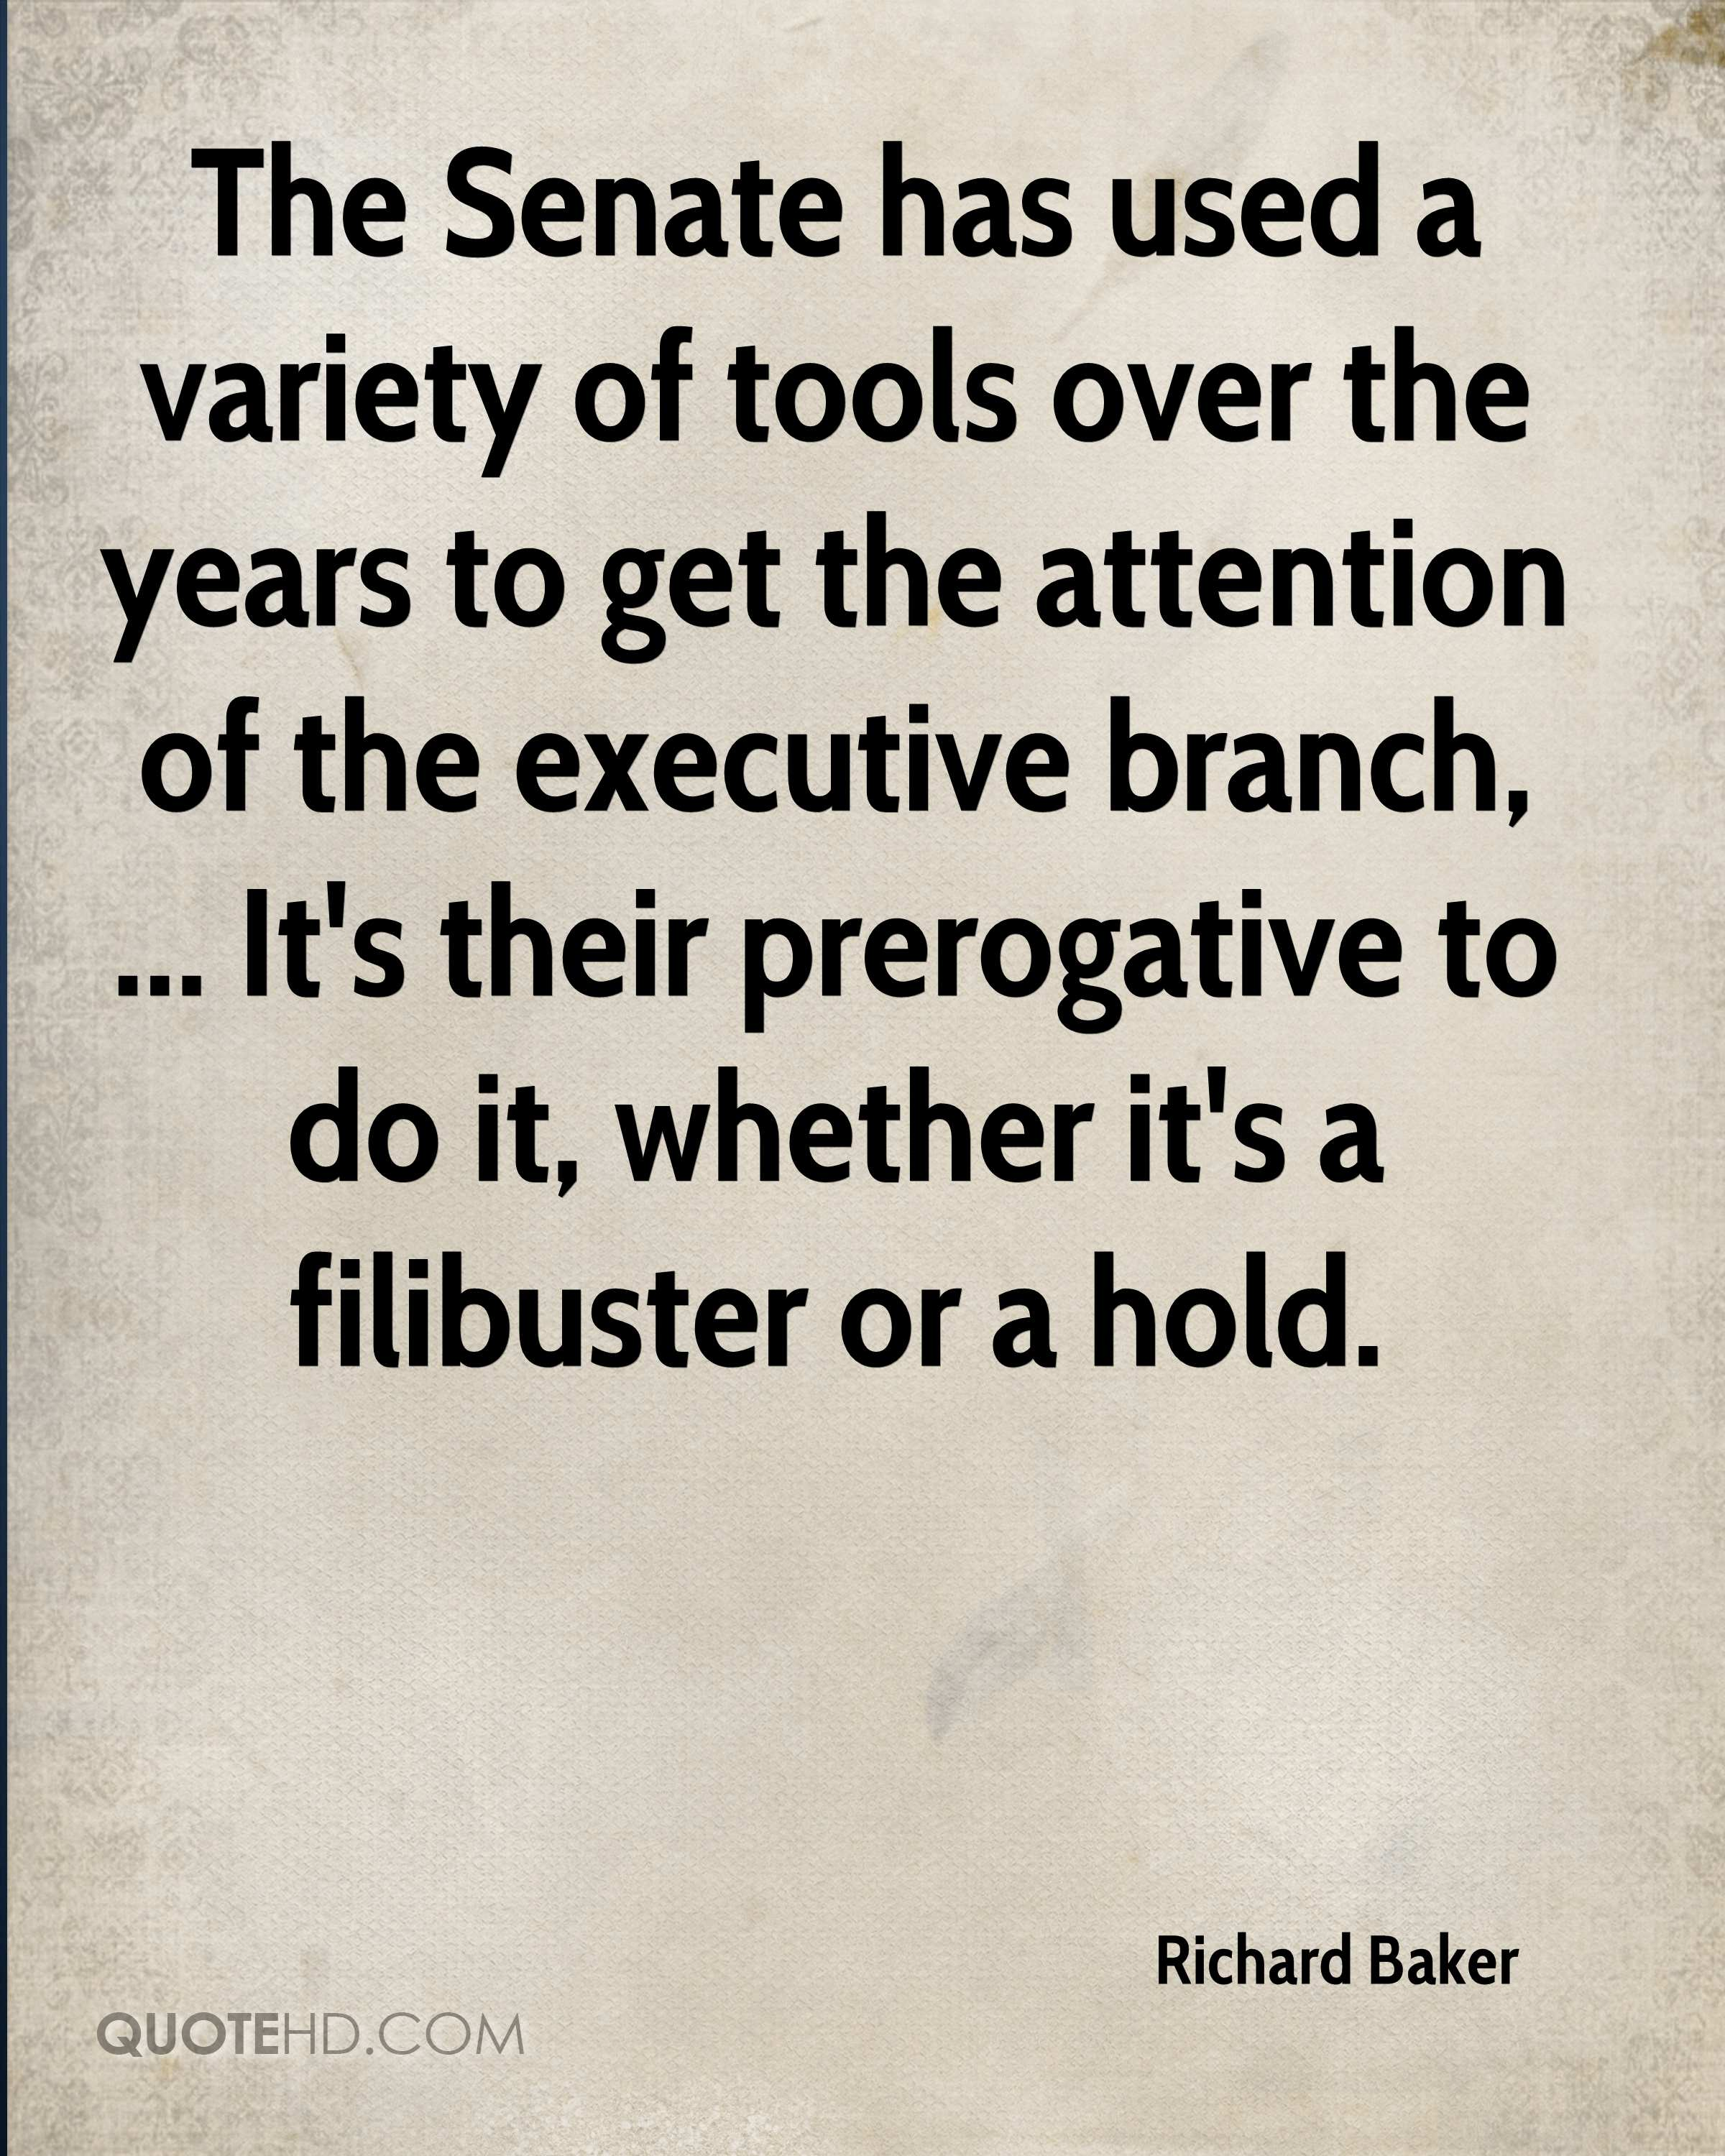 The Senate has used a variety of tools over the years to get the attention of the executive branch, ... It's their prerogative to do it, whether it's a filibuster or a hold.